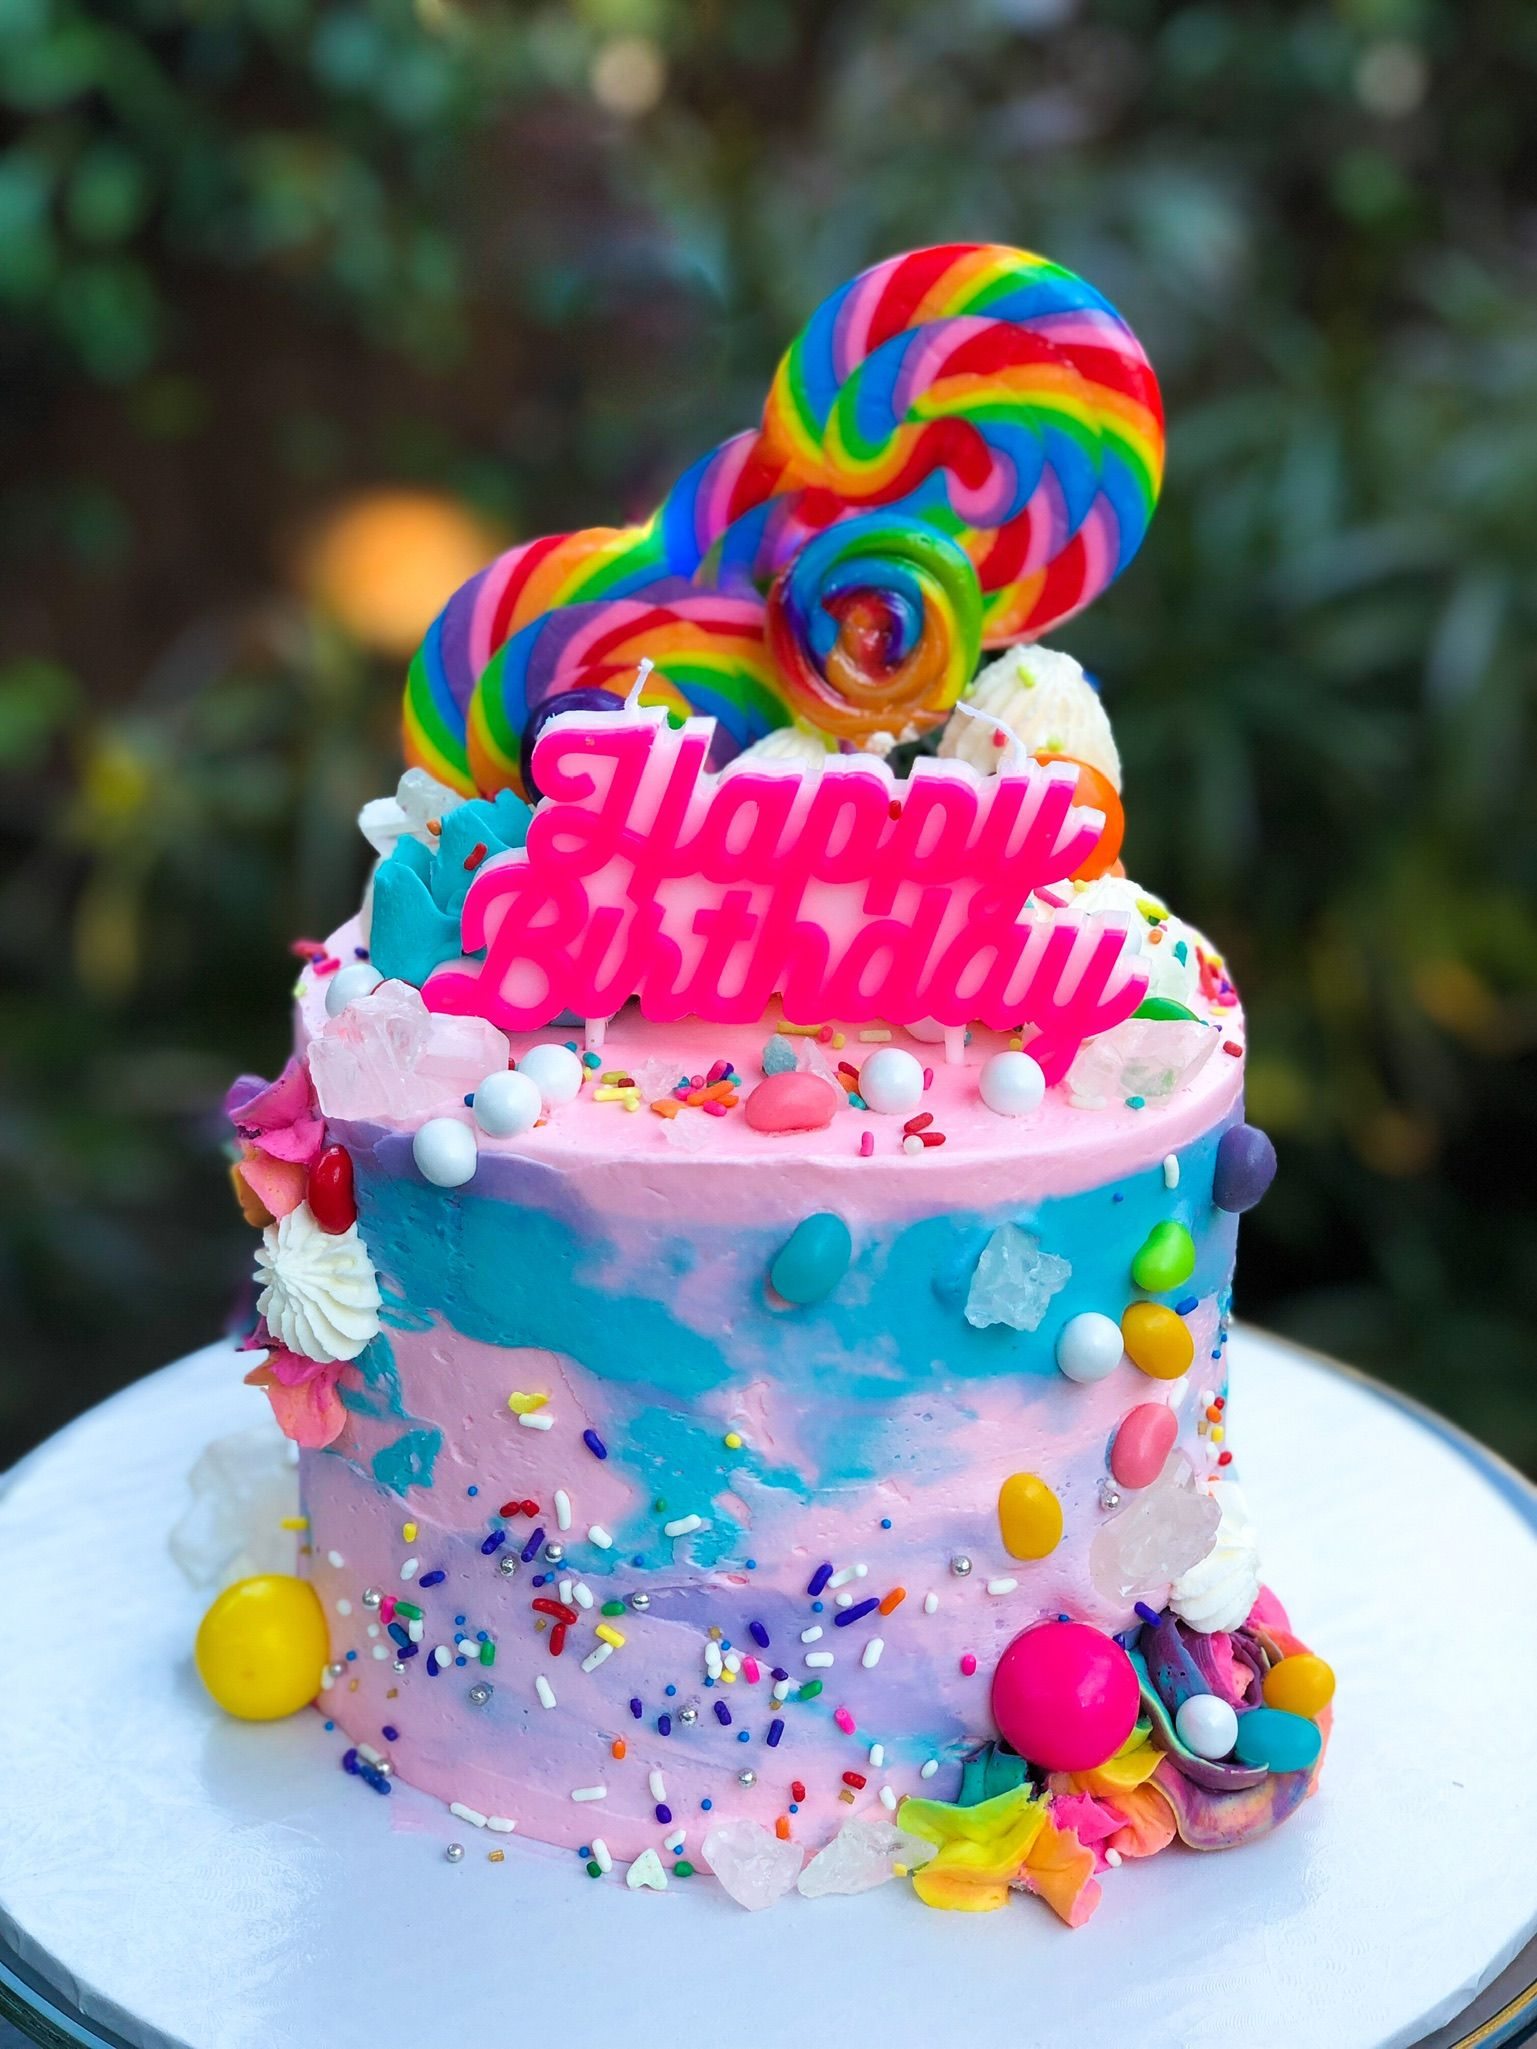 Pleasing Rainbow Overloaded Birthday Cake With Candy And Lollipops Funny Birthday Cards Online Aboleapandamsfinfo